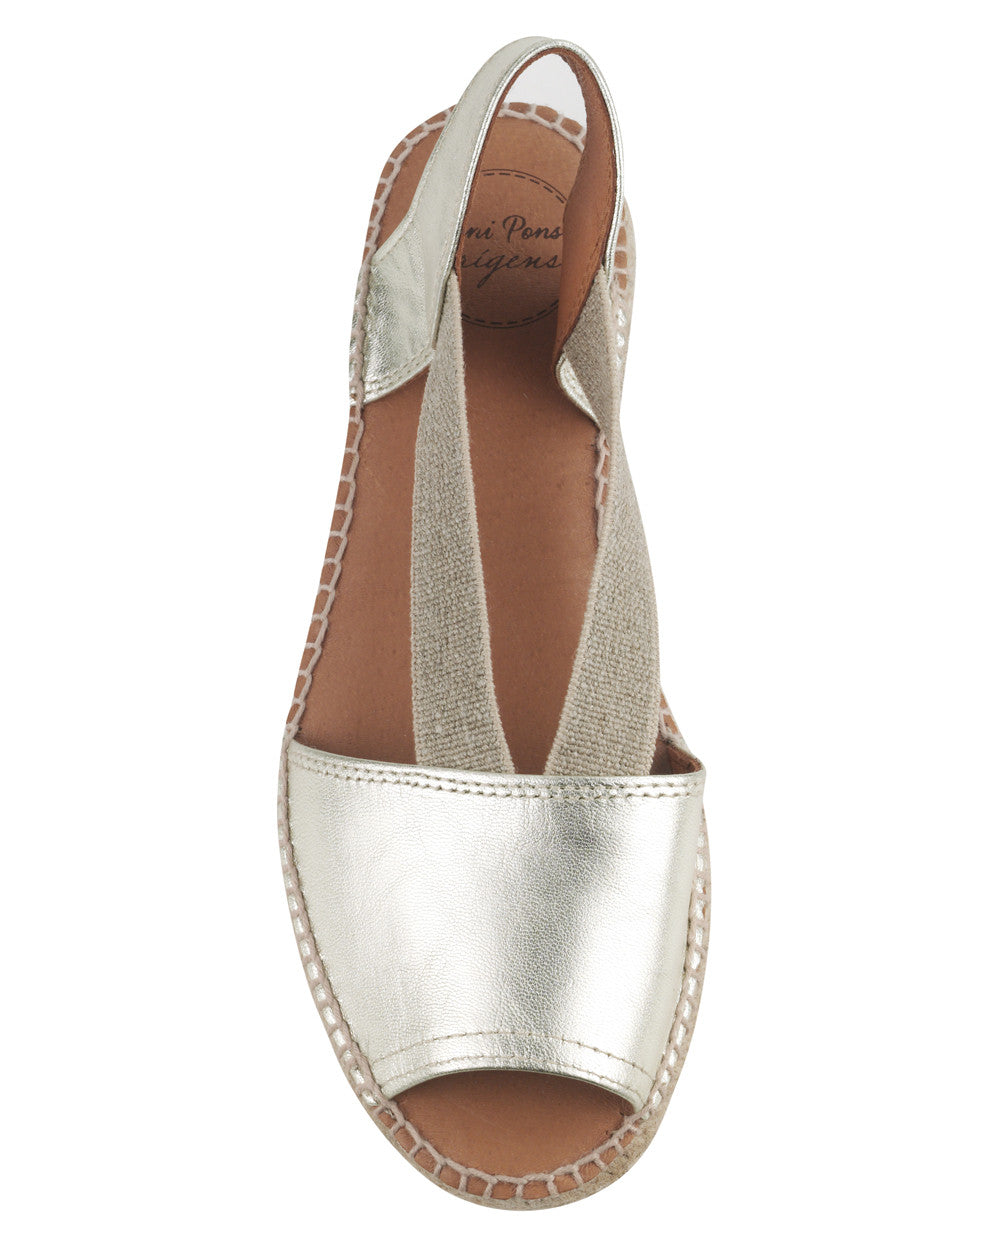 Etna Platinum Leather Flat Espadrille - The Espadrille Hut